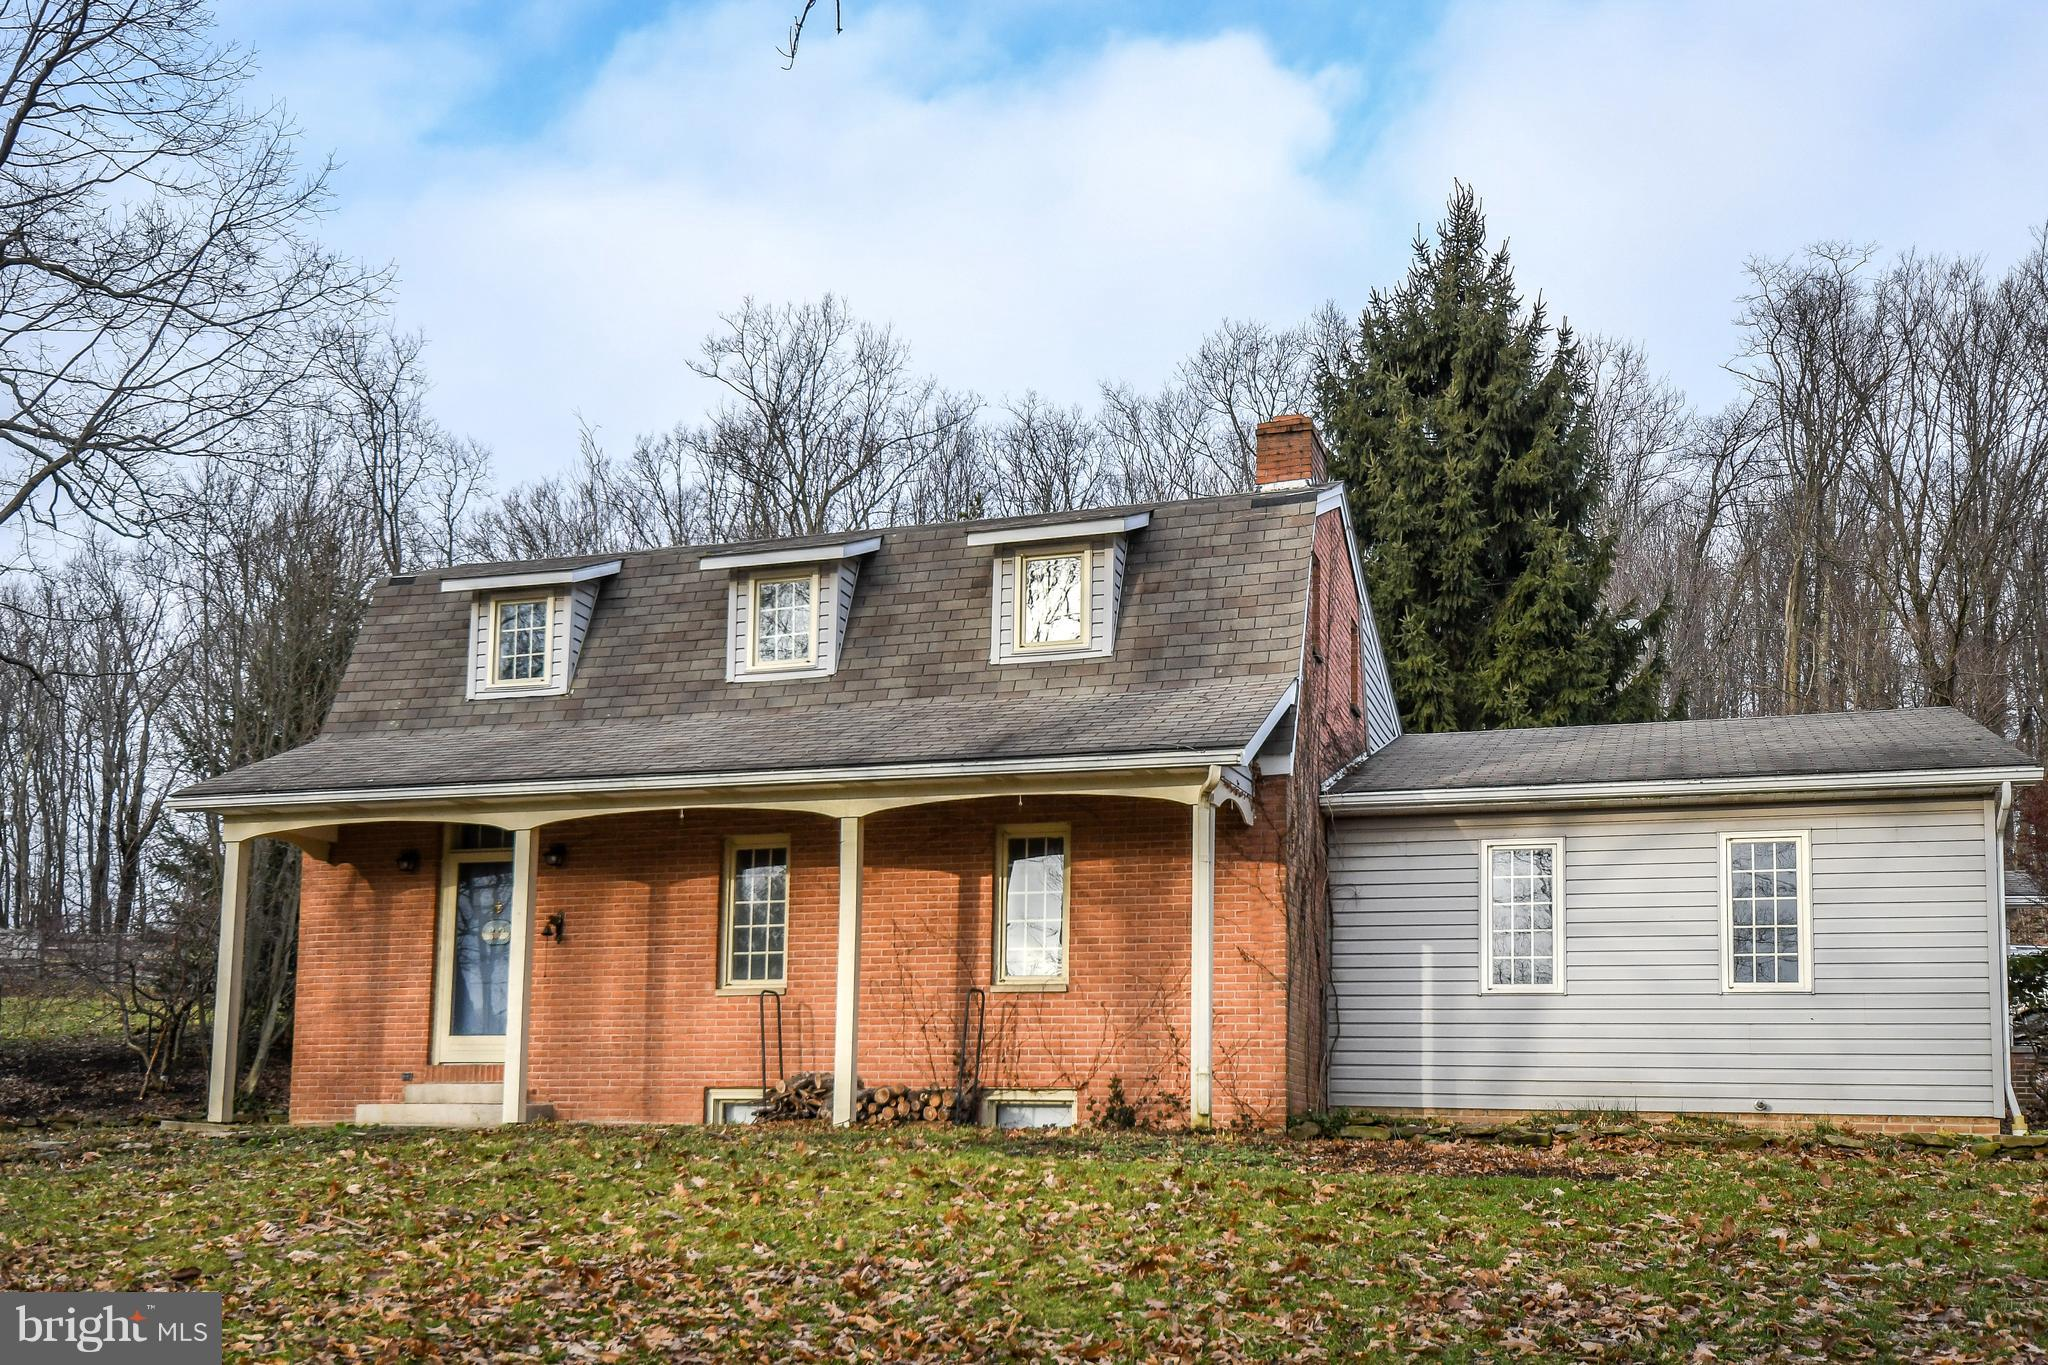 378 WINDY ACRES LANE, GRANTSVILLE, MD 21536